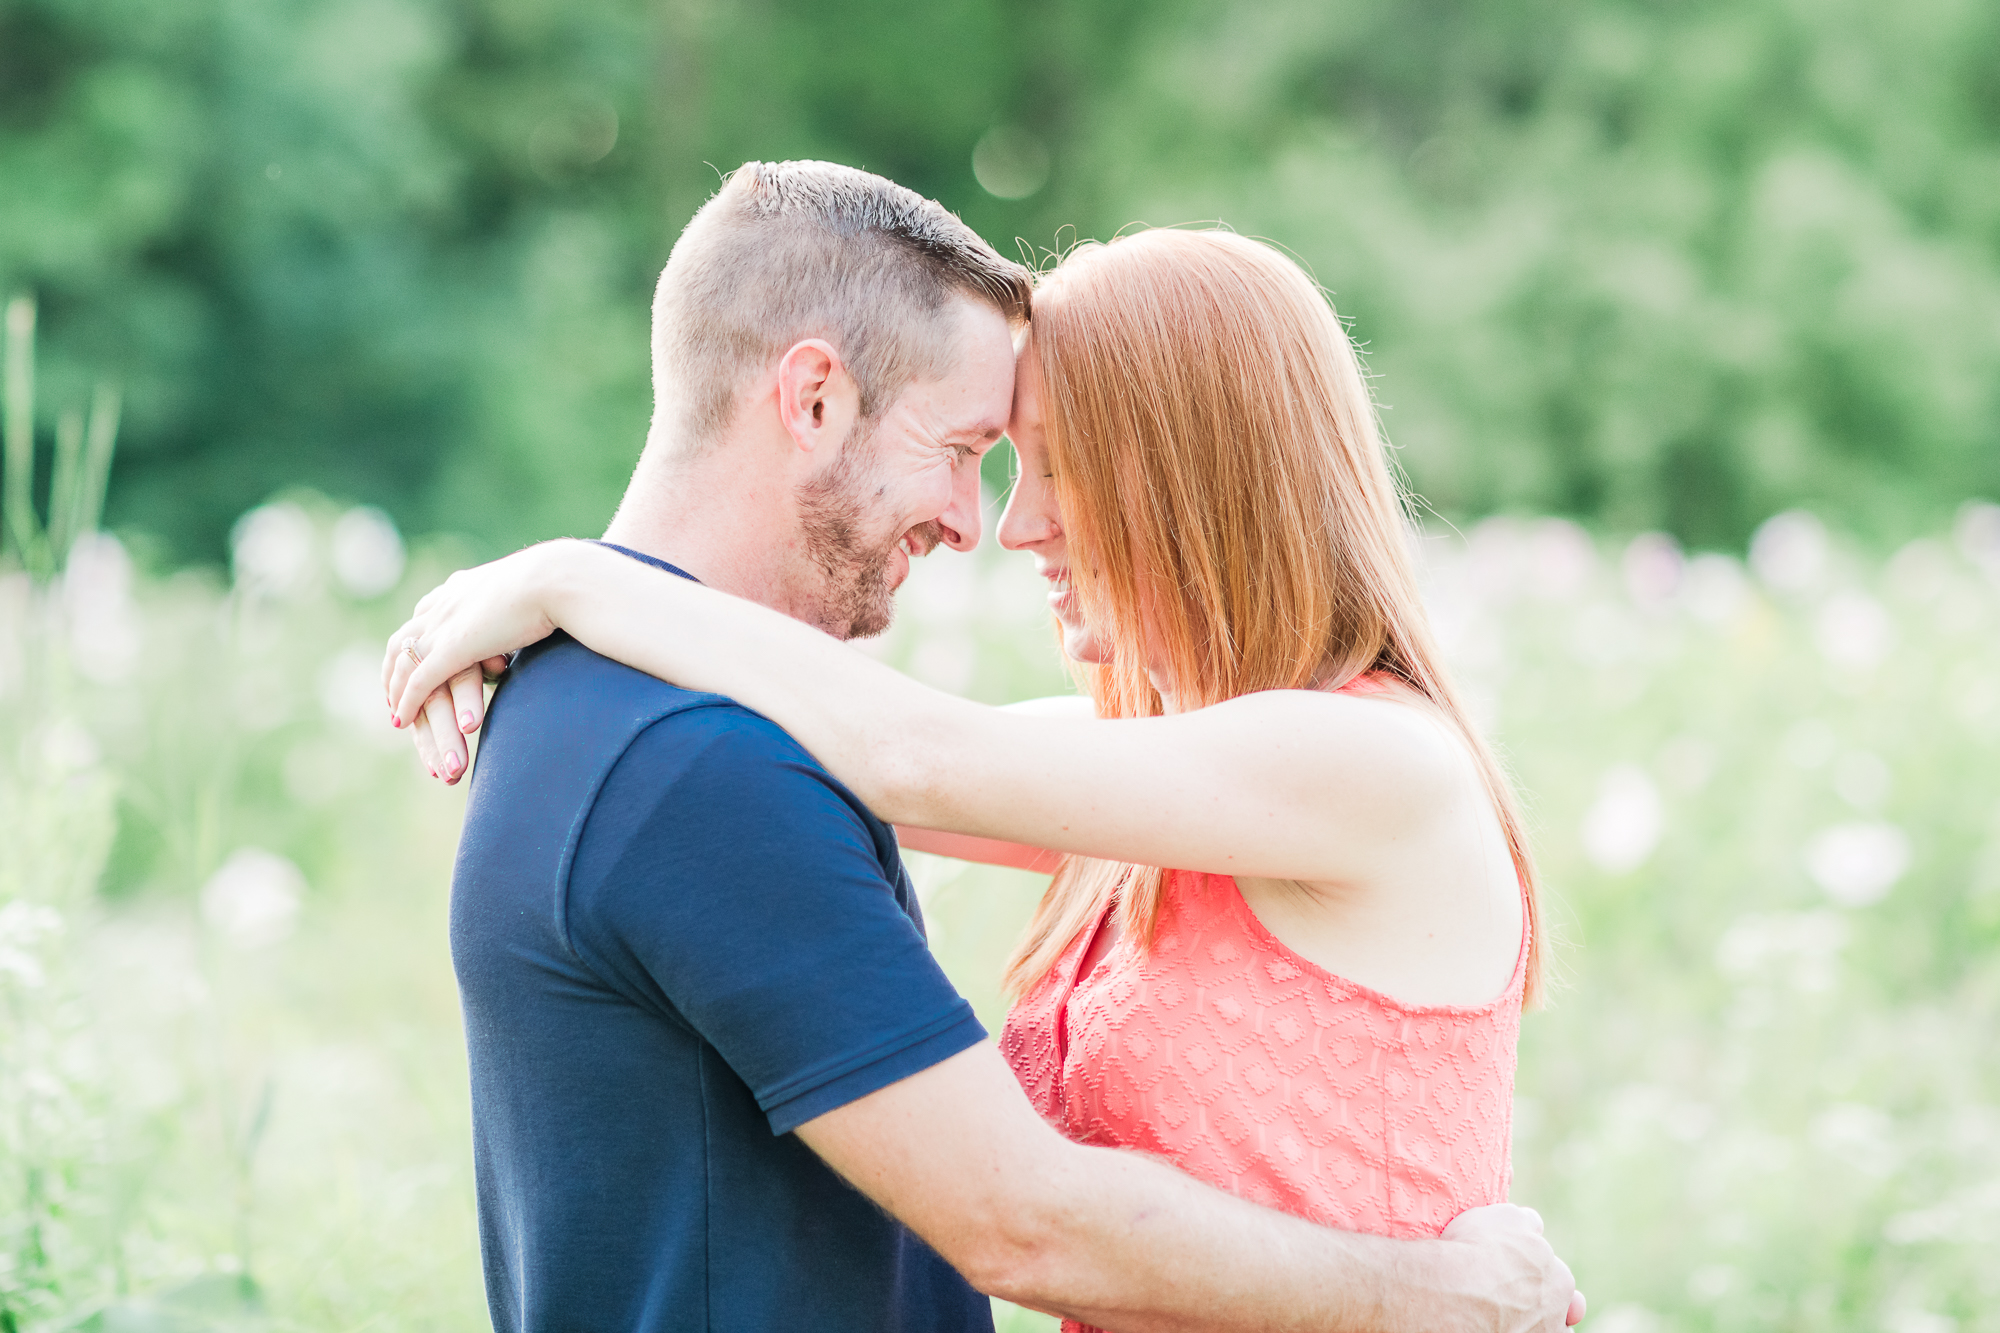 AB Favorites_Katy+Brian_Engagement Session_Brecksville Reservation_Brecksville_Ohio-17.jpg